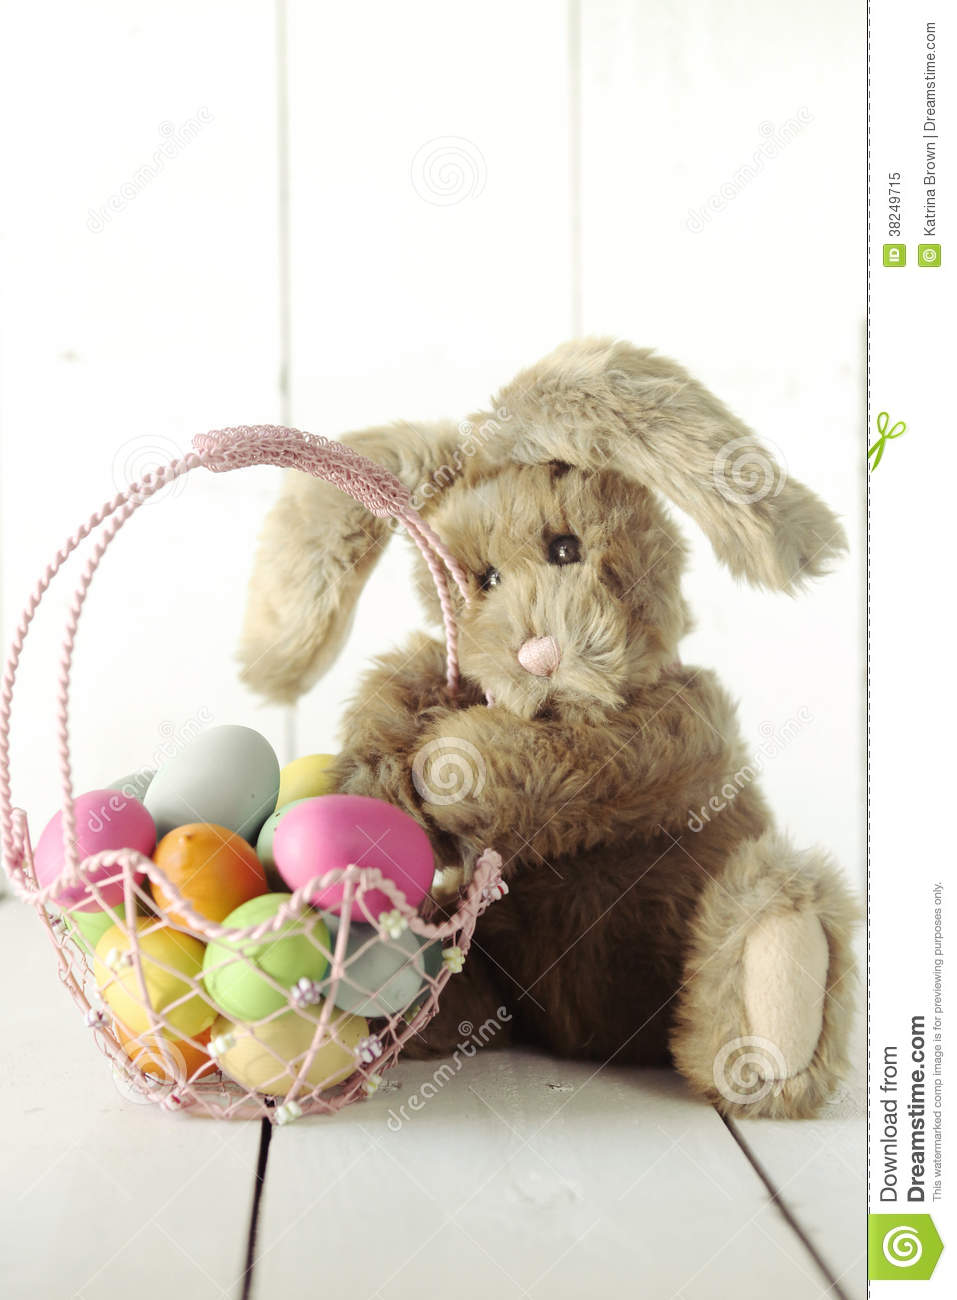 Påsk Bunny Themed Holiday Occasion Image